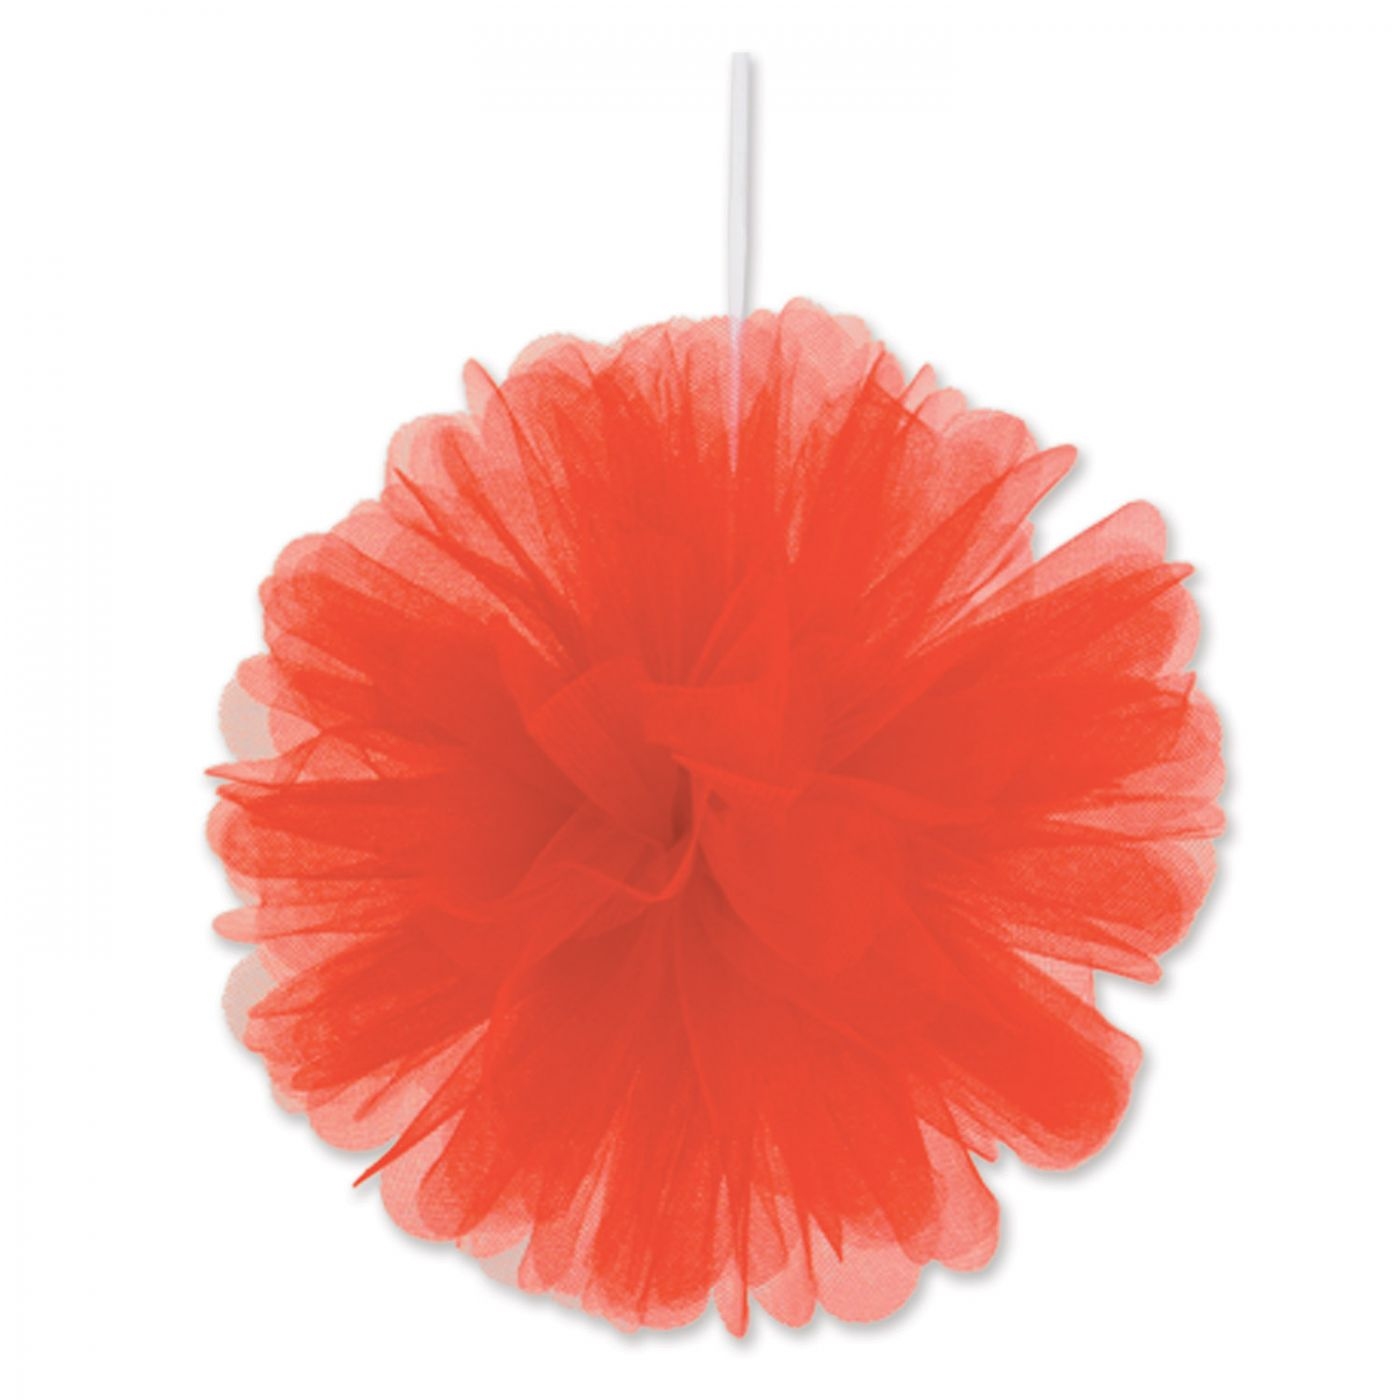 Tulle Balls image